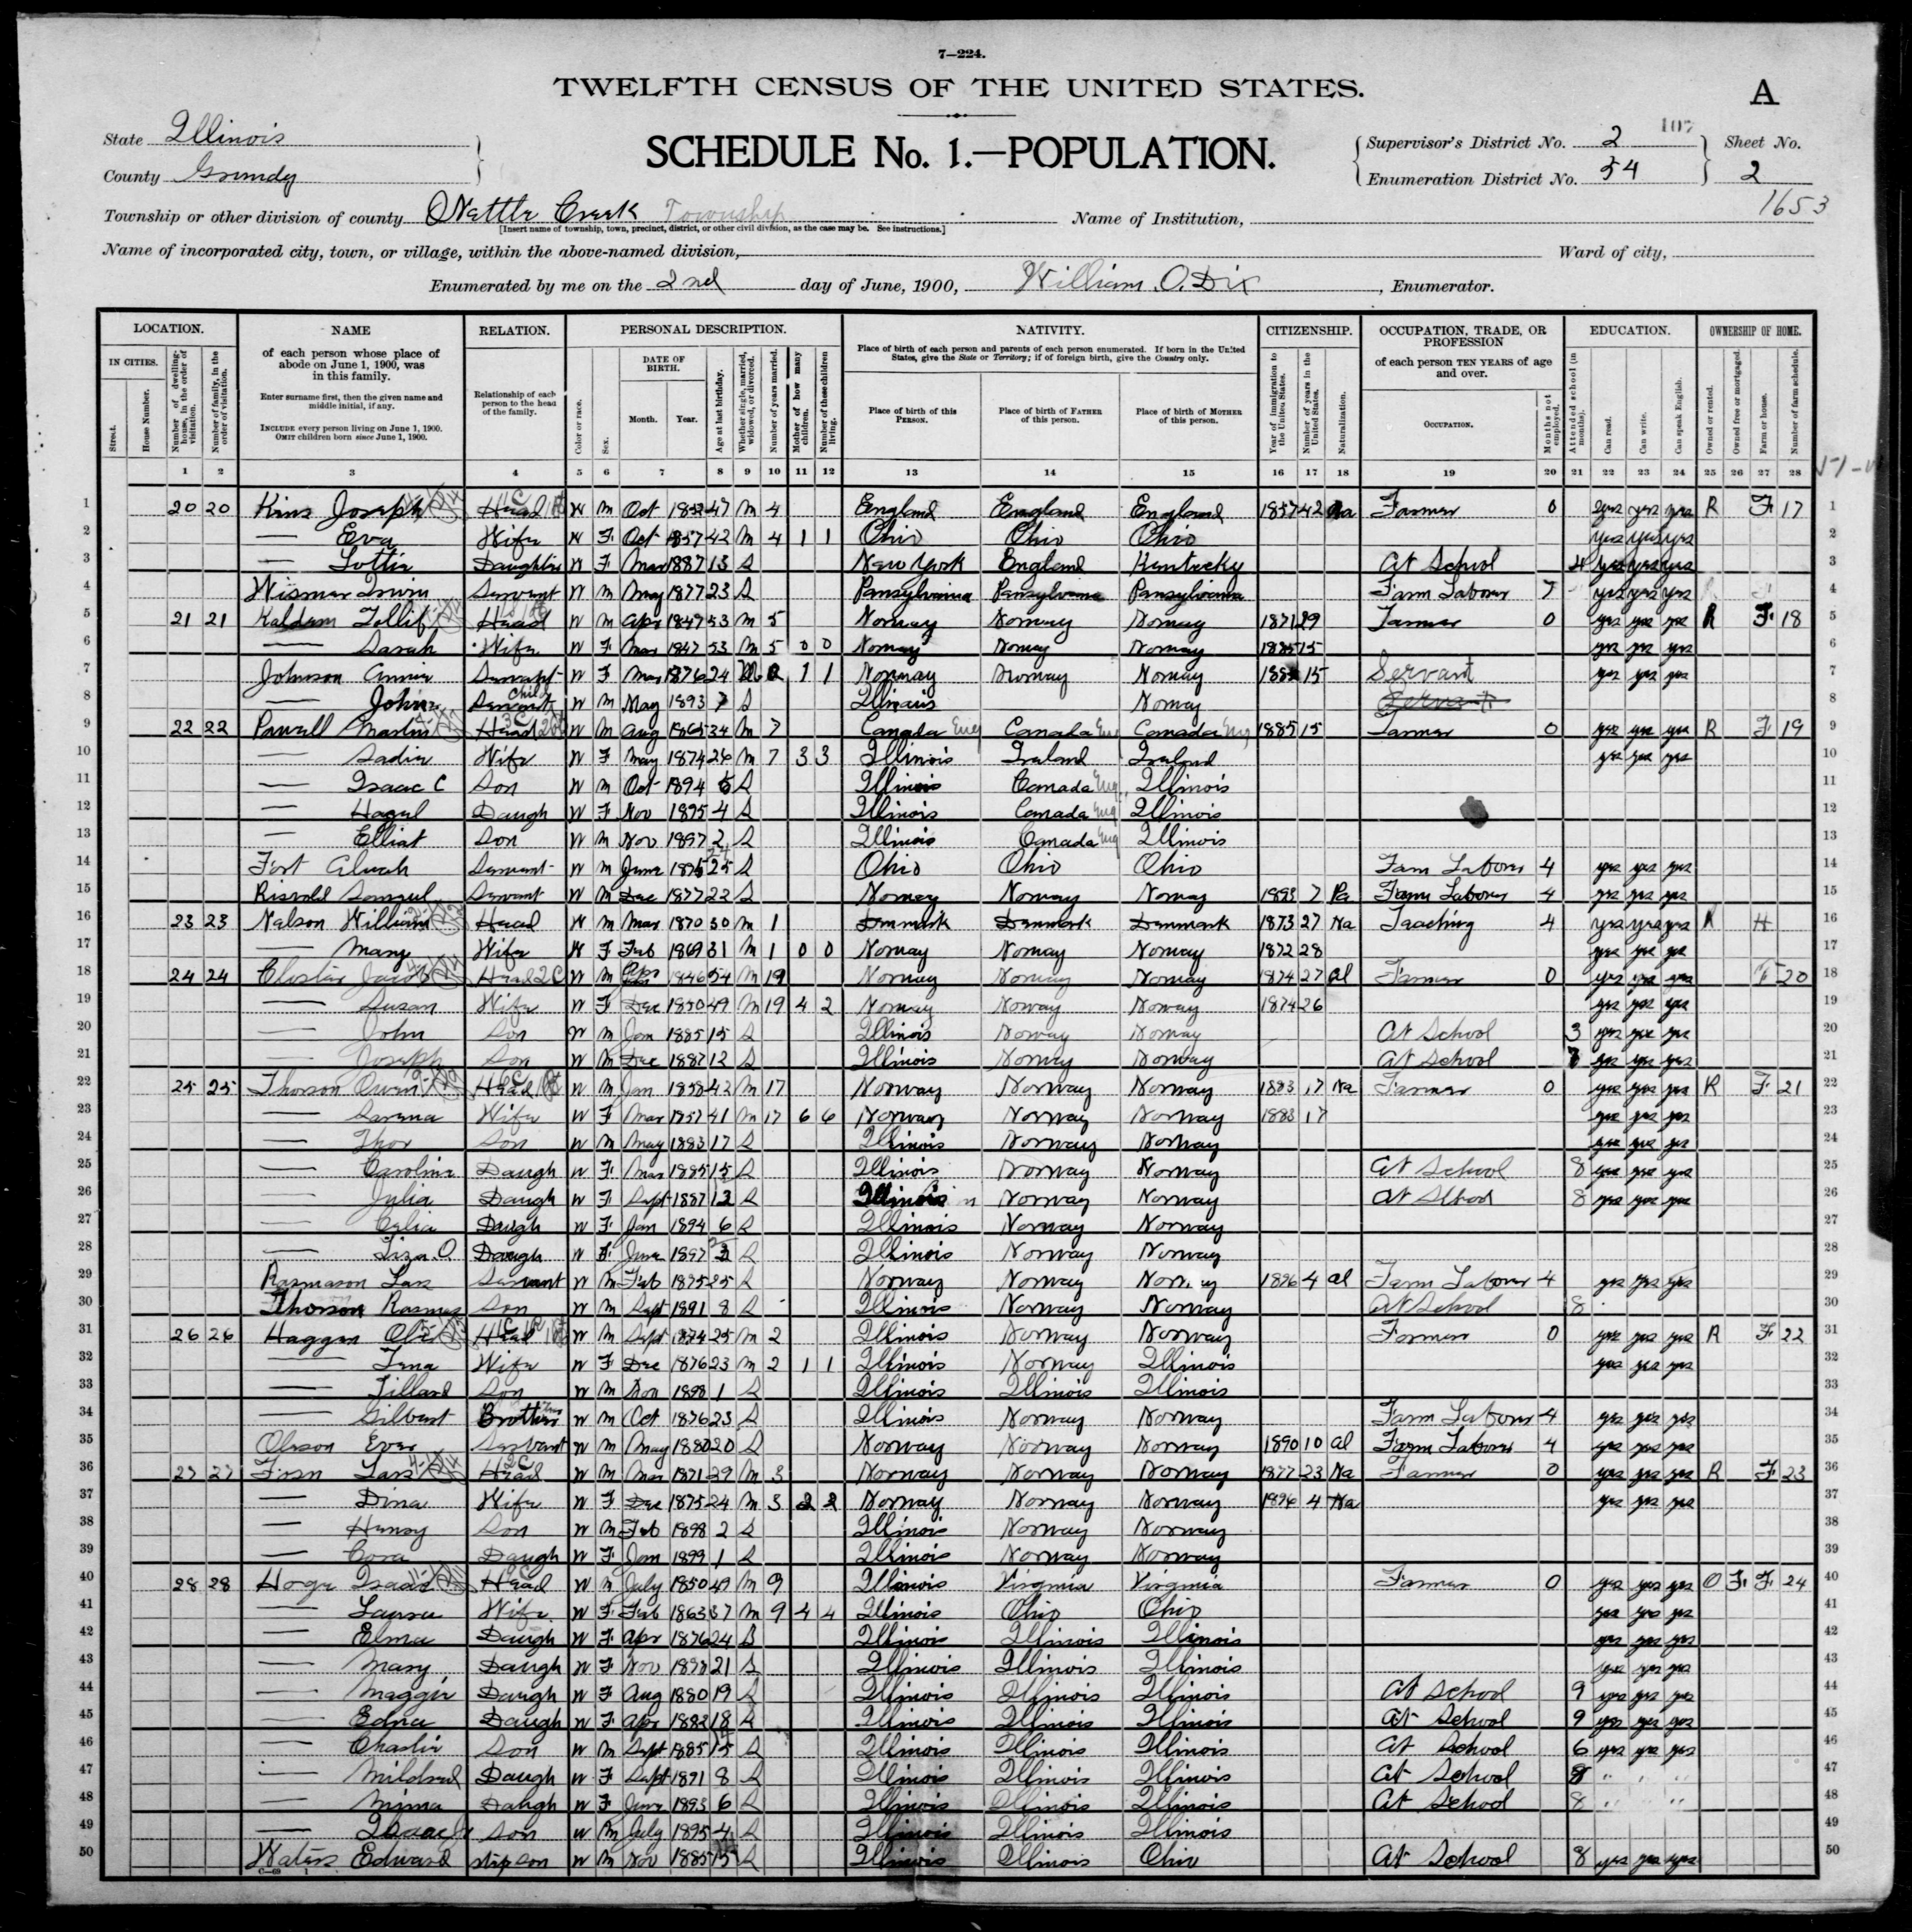 Illinois: GRUNDY County, Enumeration District 54, Sheet No. 2A